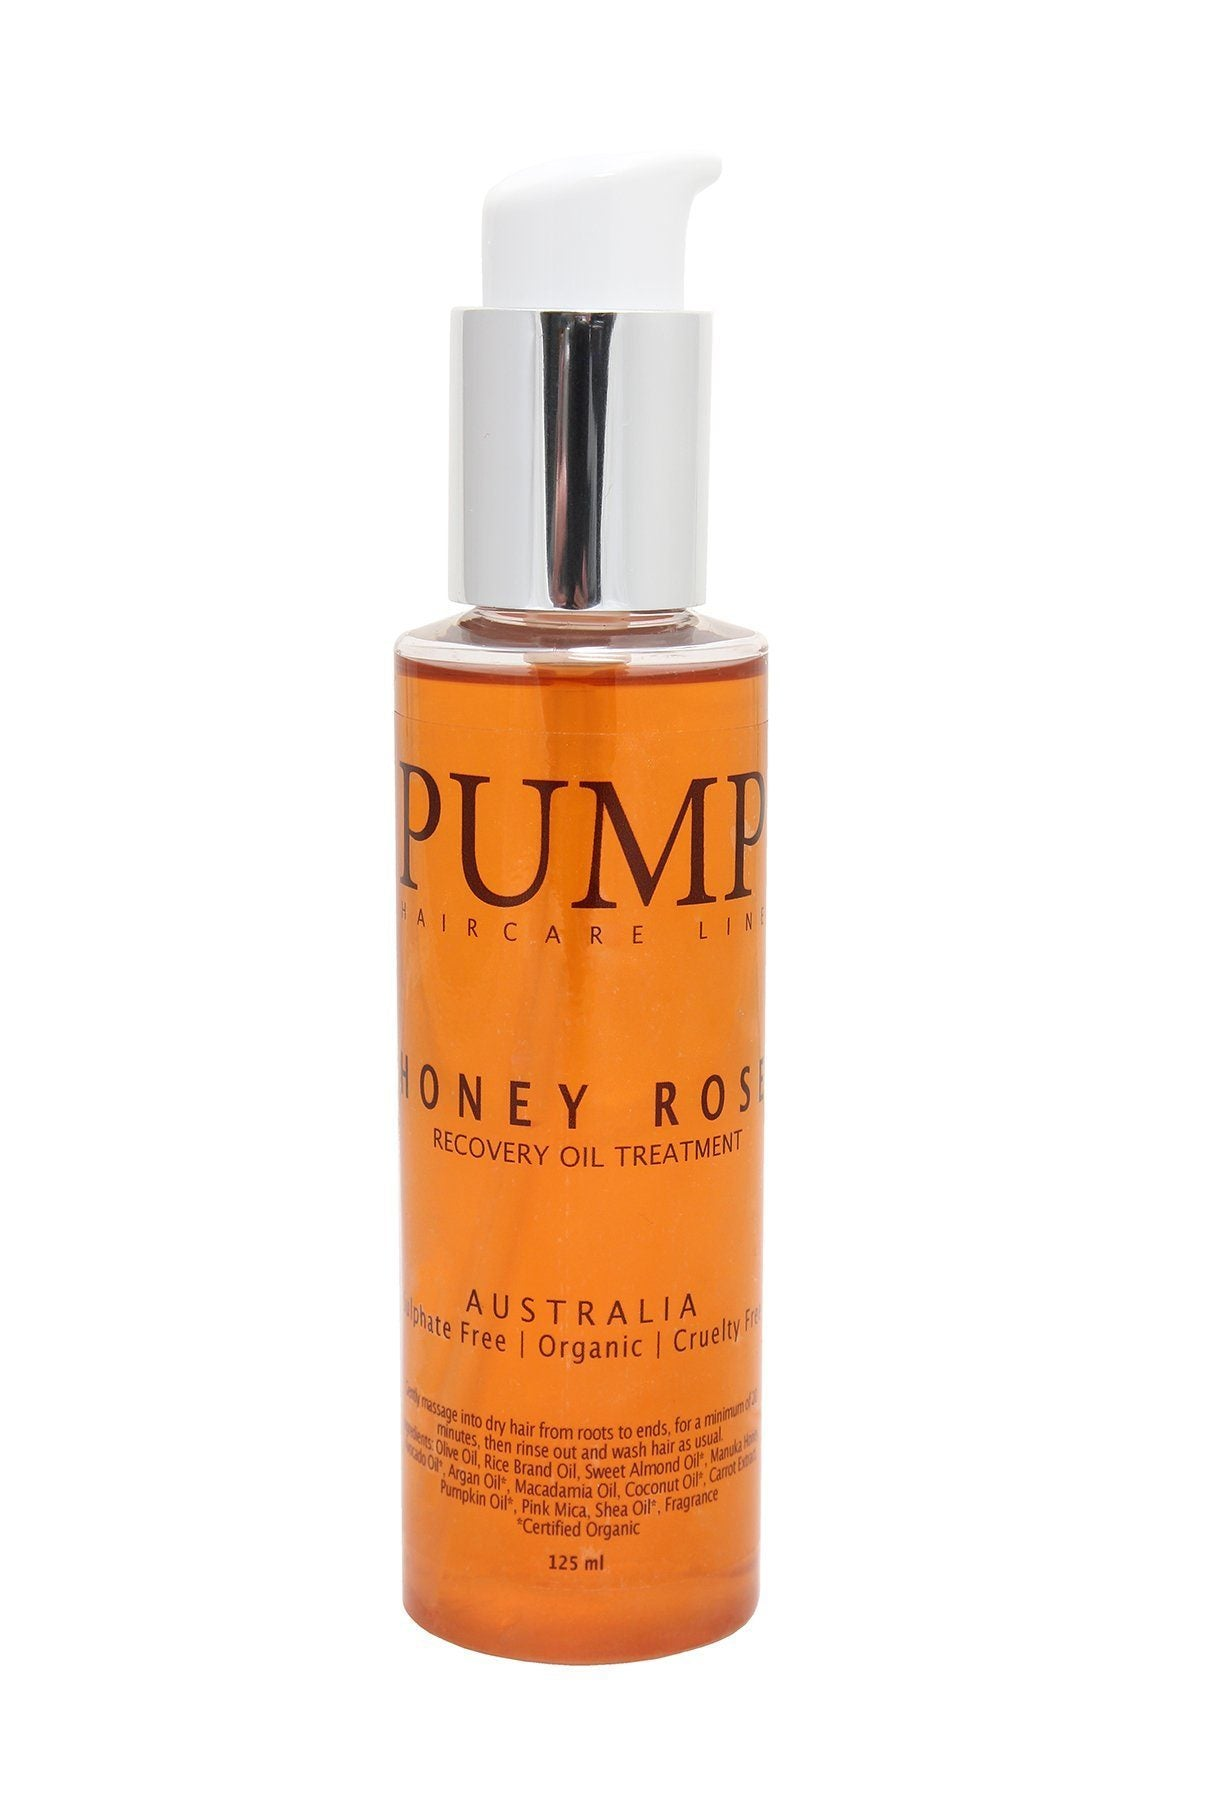 Pump Honey Rose Recovery Oil Treatment